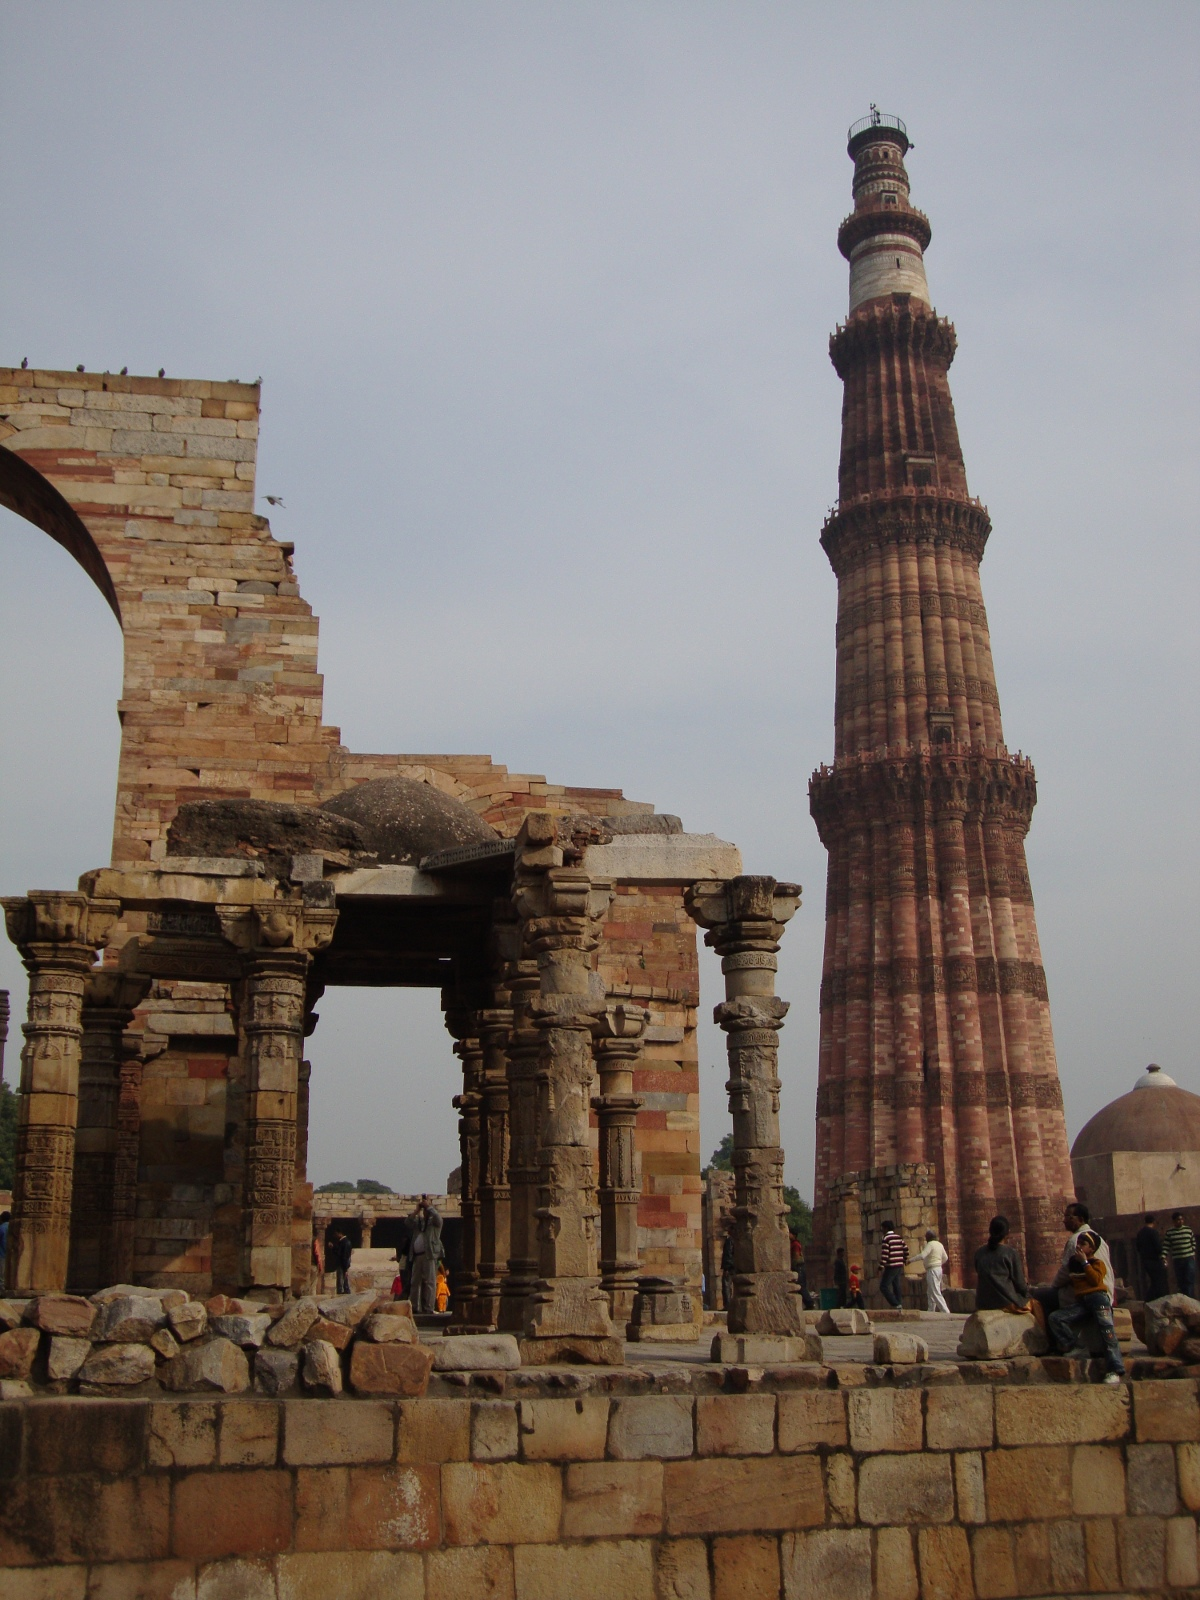 Qutb Minar towers over surrounding ruins in south Delhi.